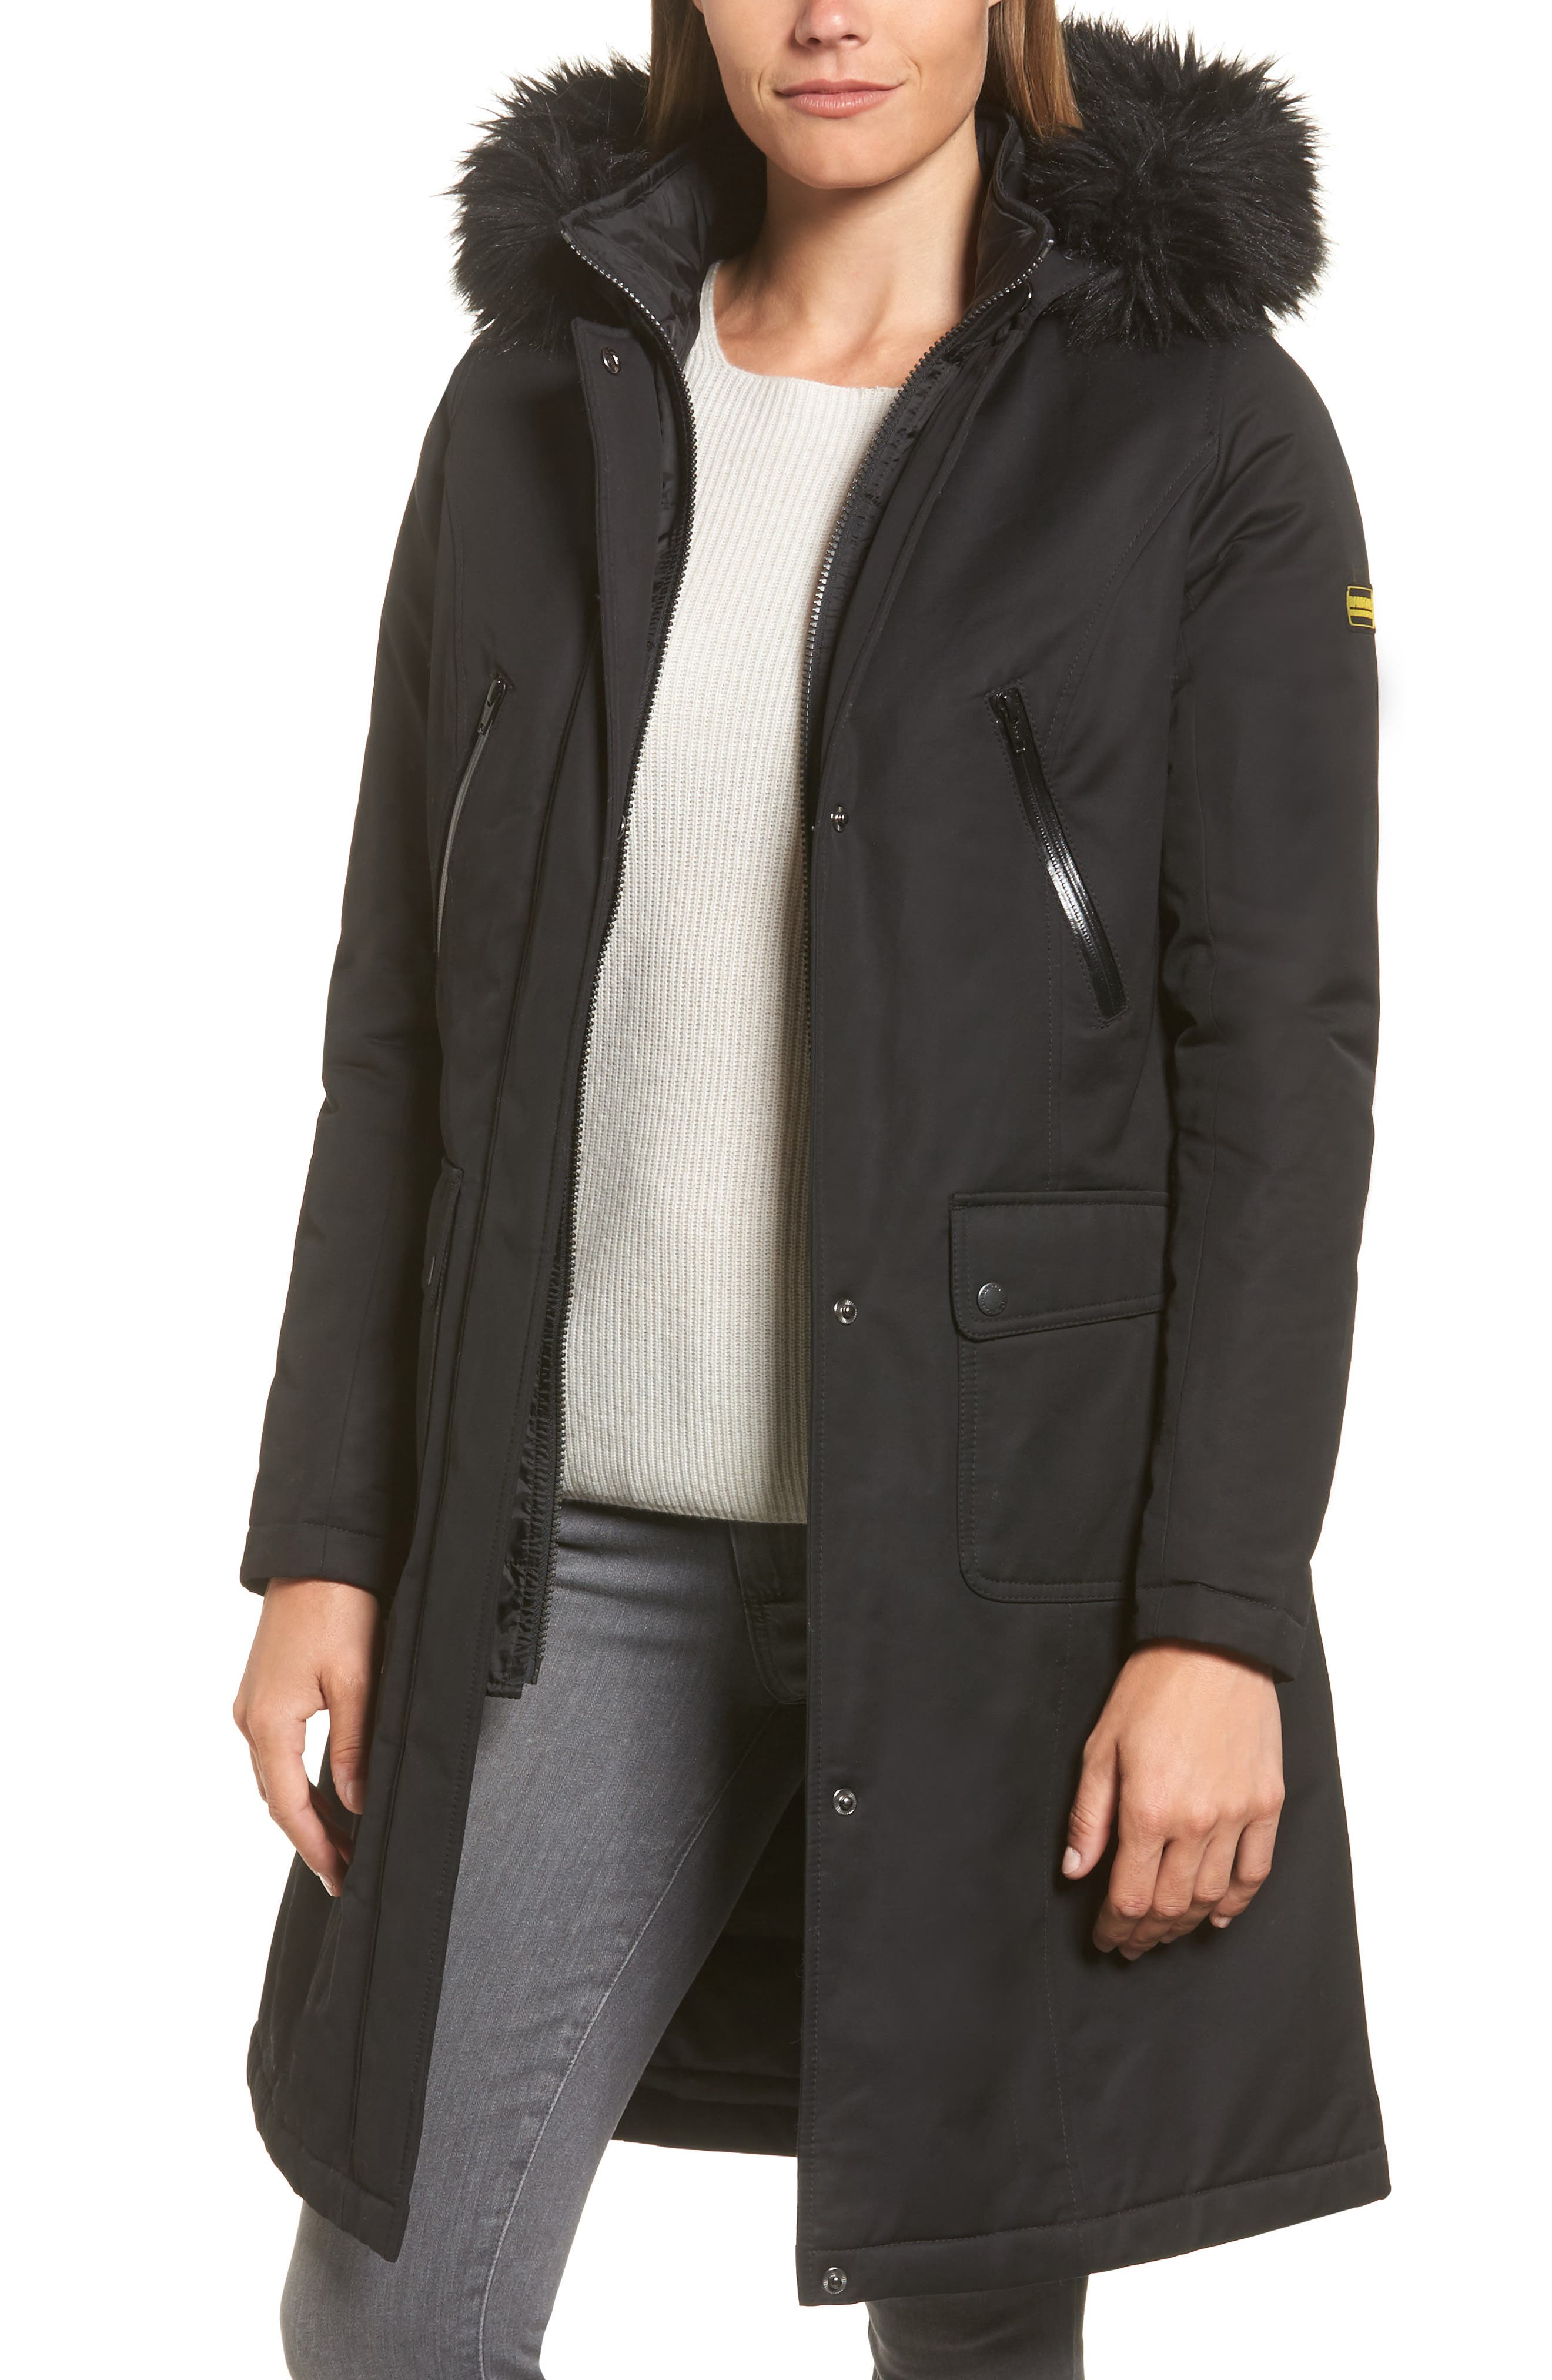 Barbour Mondello Hooded Water Resistant Jacket with Faux Fur Trim